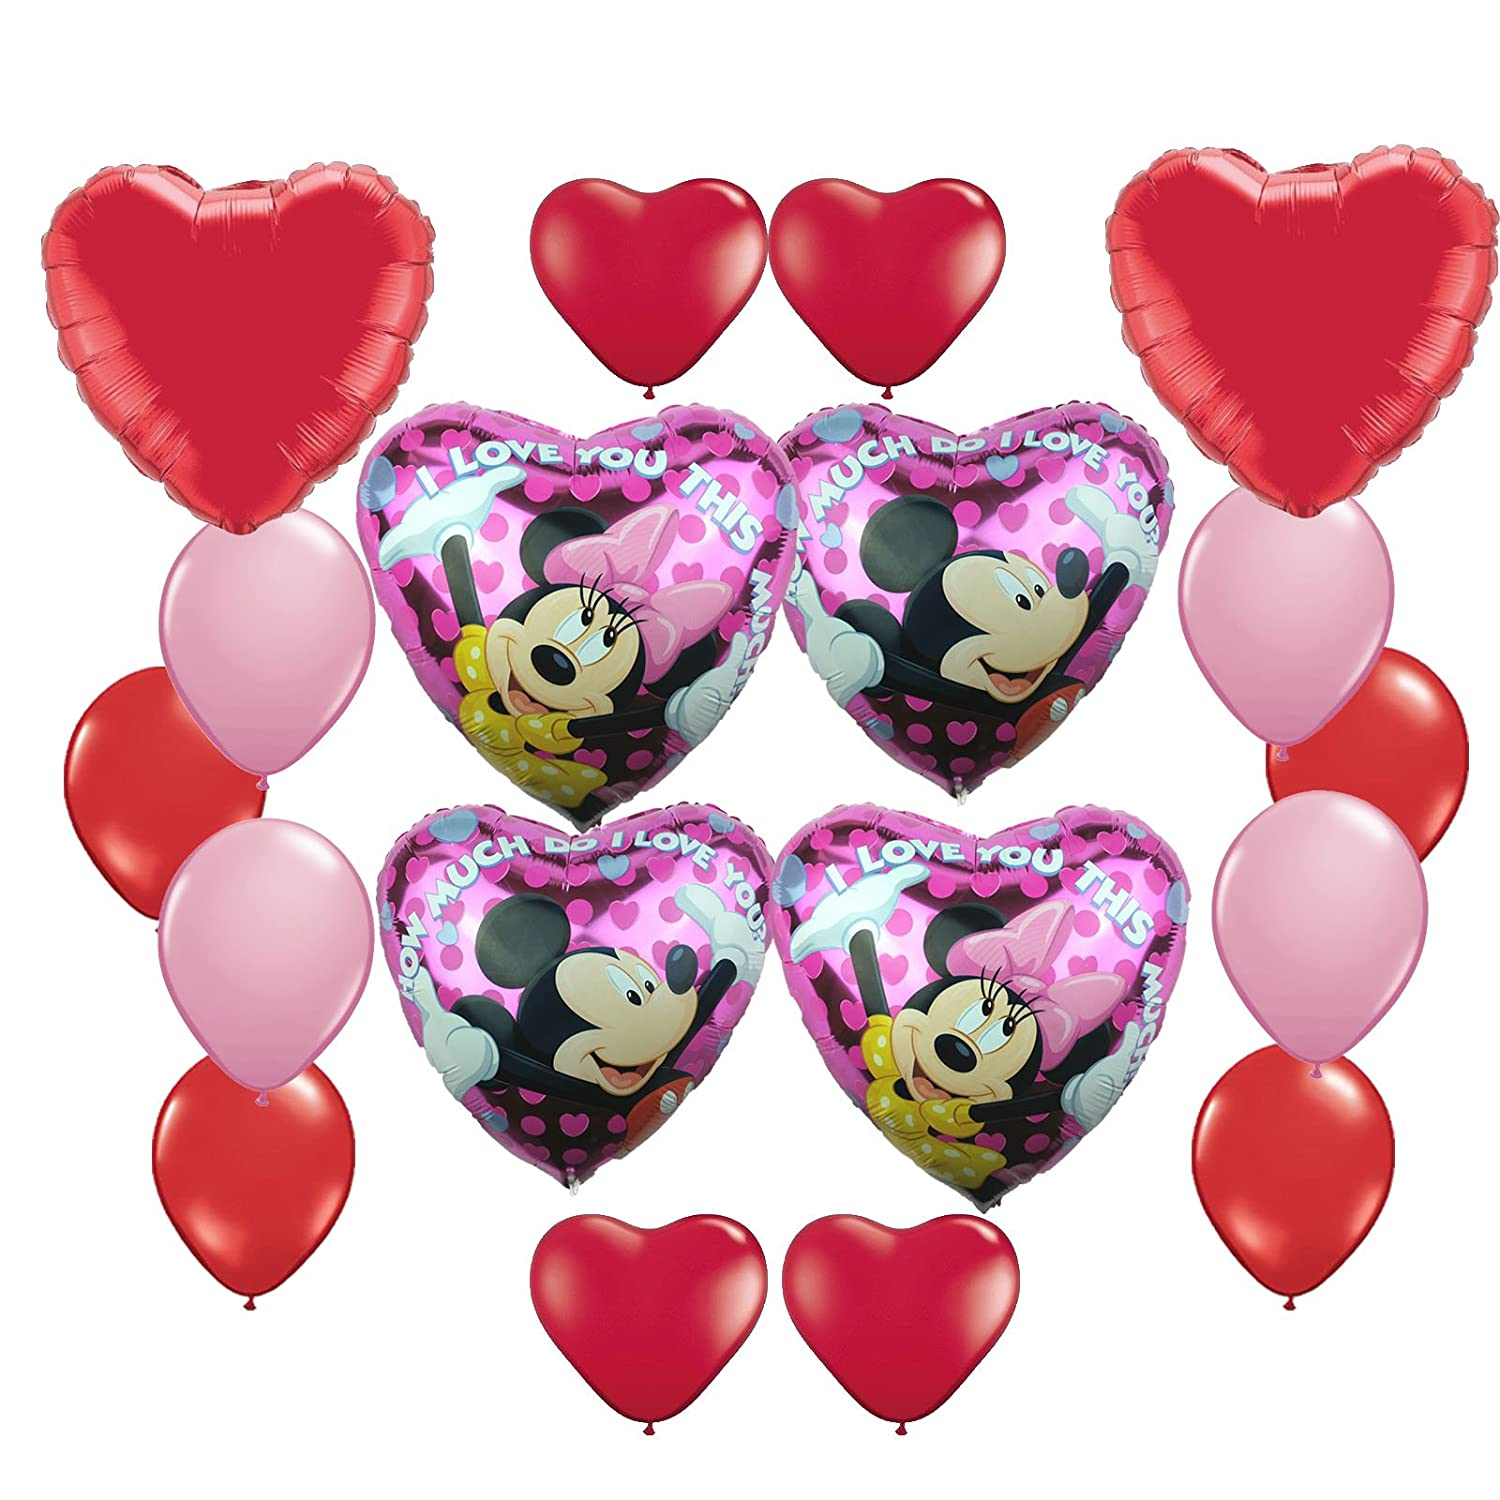 amazoncom mickey mouse and minnie mouse valentine day heart balloon bouquet 16 pc toys games